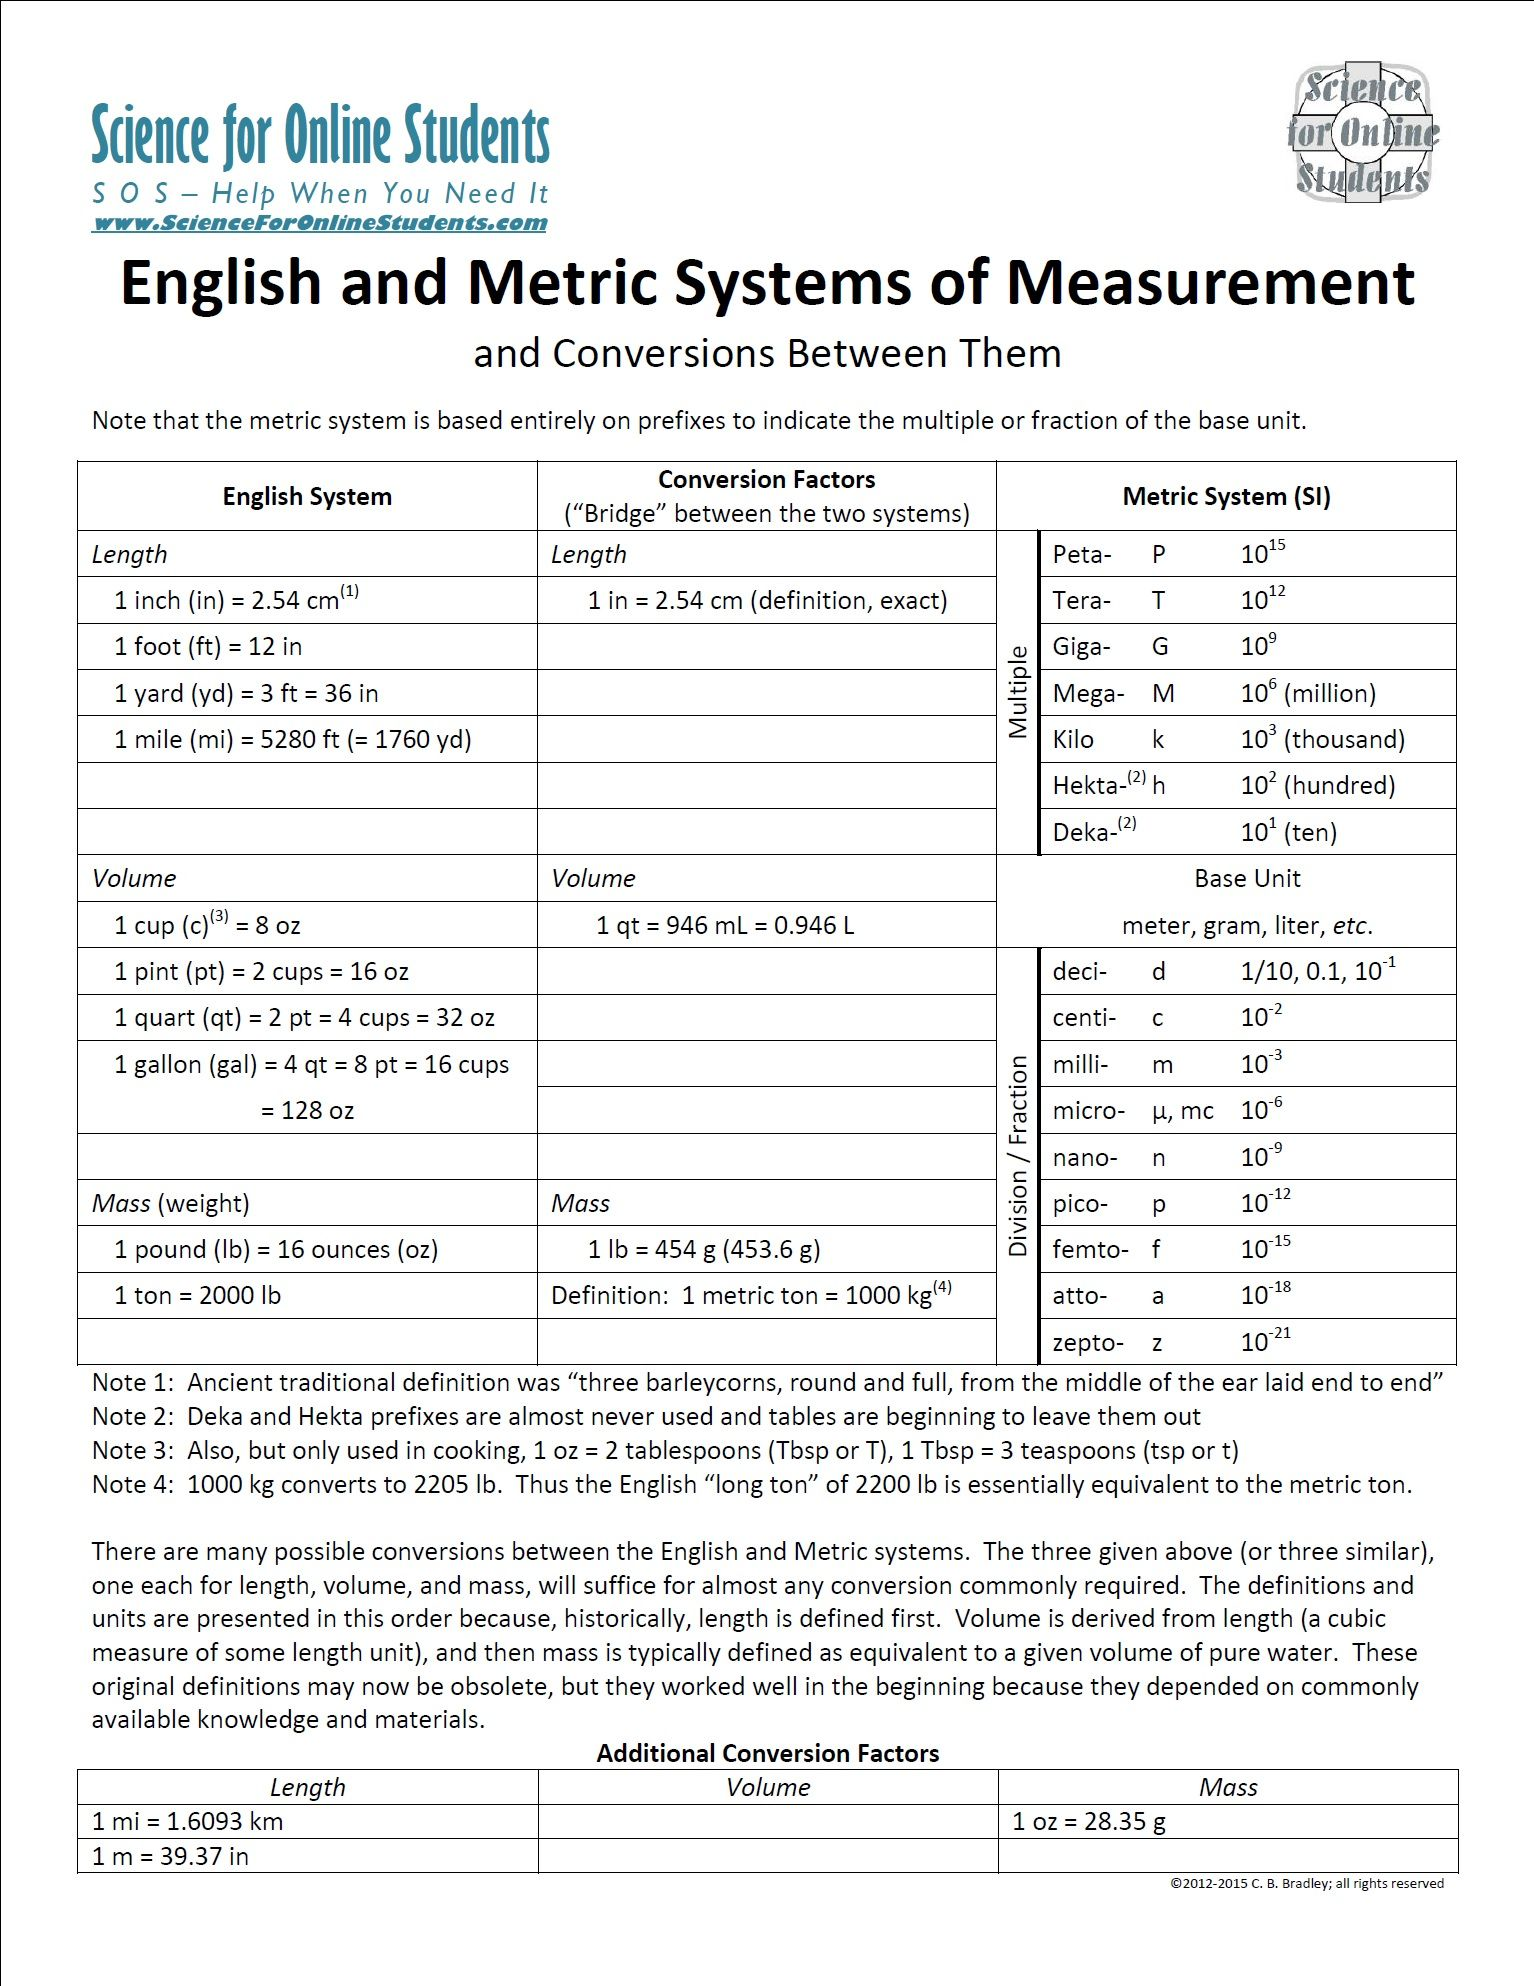 Table Of English System Metric System And Conversions